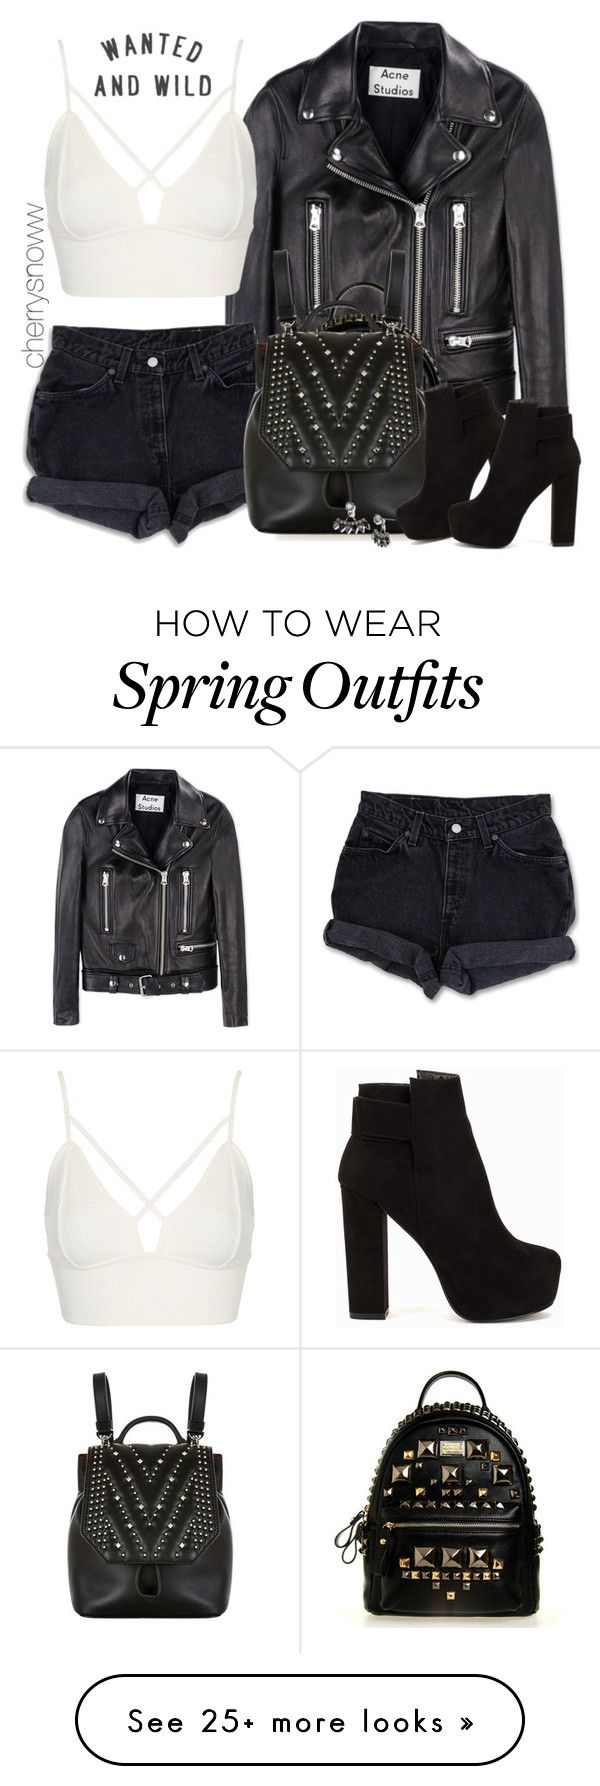 """Edgy biker chic spring outfit"" by cherrysnoww on Polyvore featuring Acne Studios, Levi's, Topshop, MCM, Nly Shoes and DANNIJO"